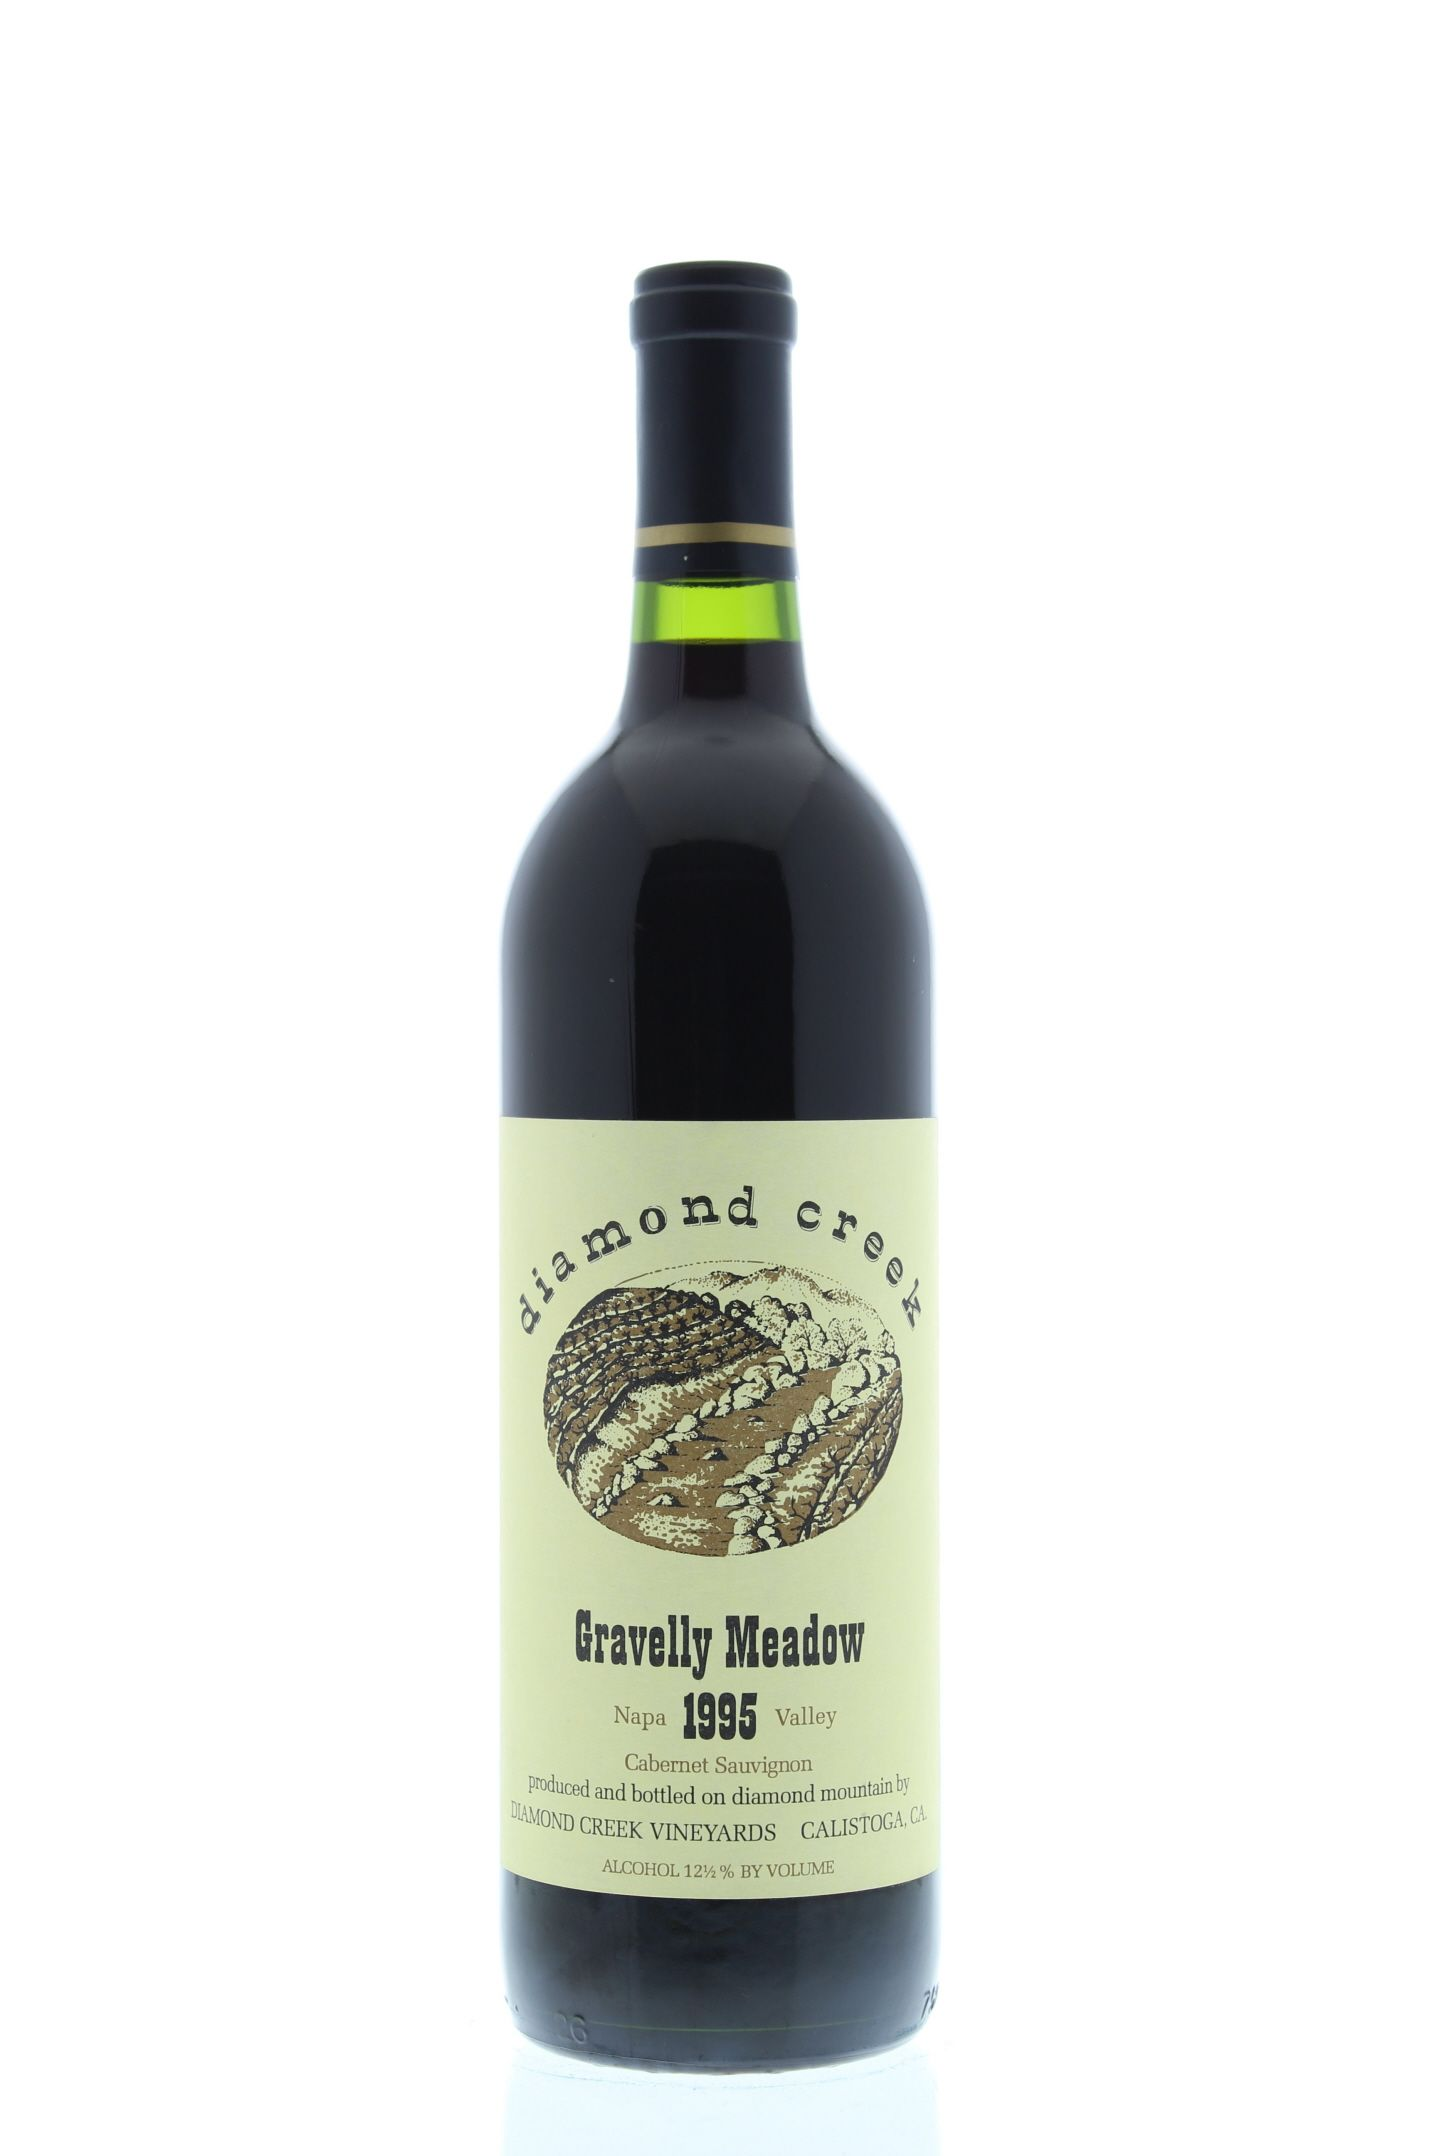 Diamond Creek Gravelly Meadow Cabernet Sauvignon 1995 Front Bottle Shot